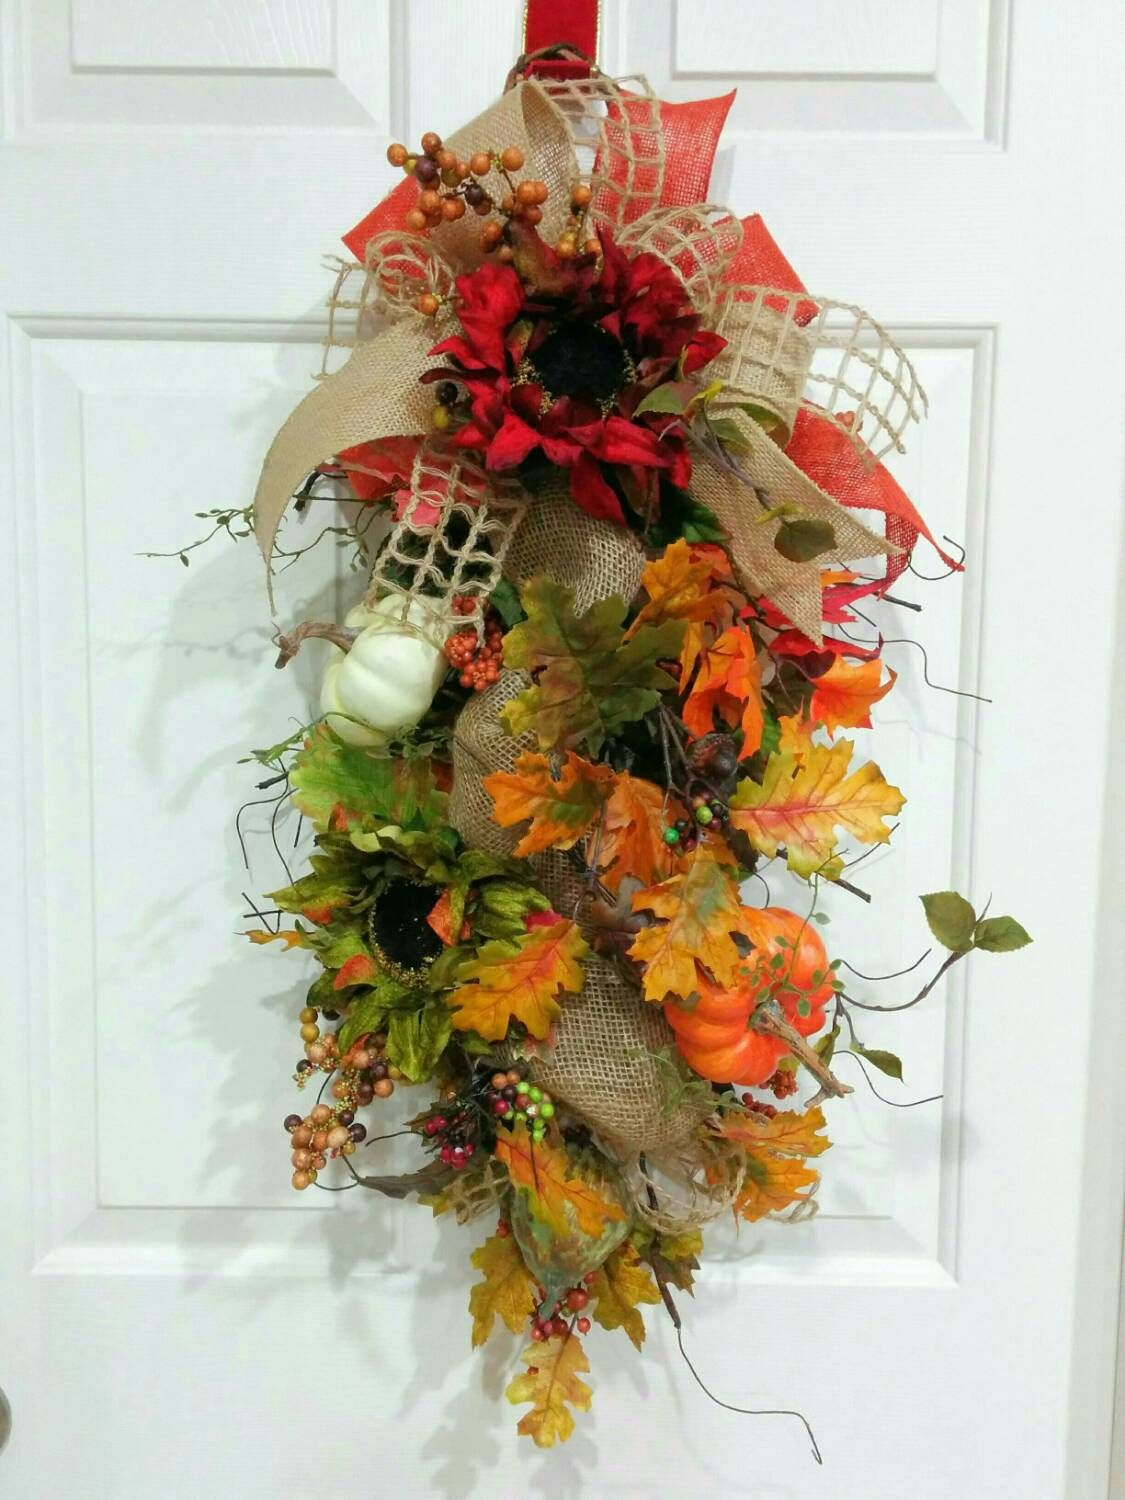 Fall Swag-Fall Sunflower and Burlup Swag-Berry Swag-Pumpkin Swag-Fall Wreath-Front Door WReath-Thanksgiving GIft-Housewarming GIft by WreathdesignsbyJulma on Etsy